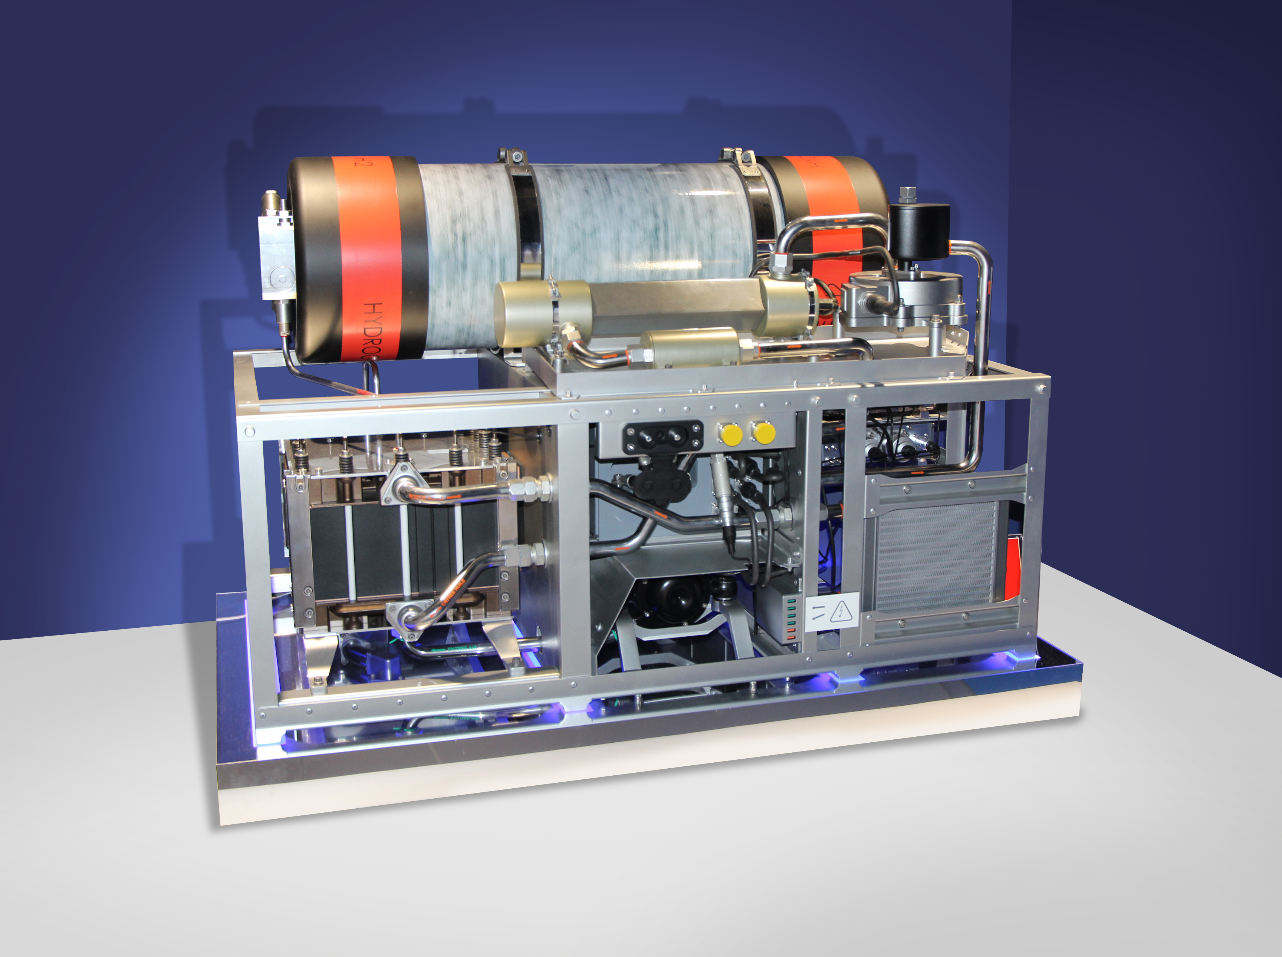 Safran gets funding for fuel cell project